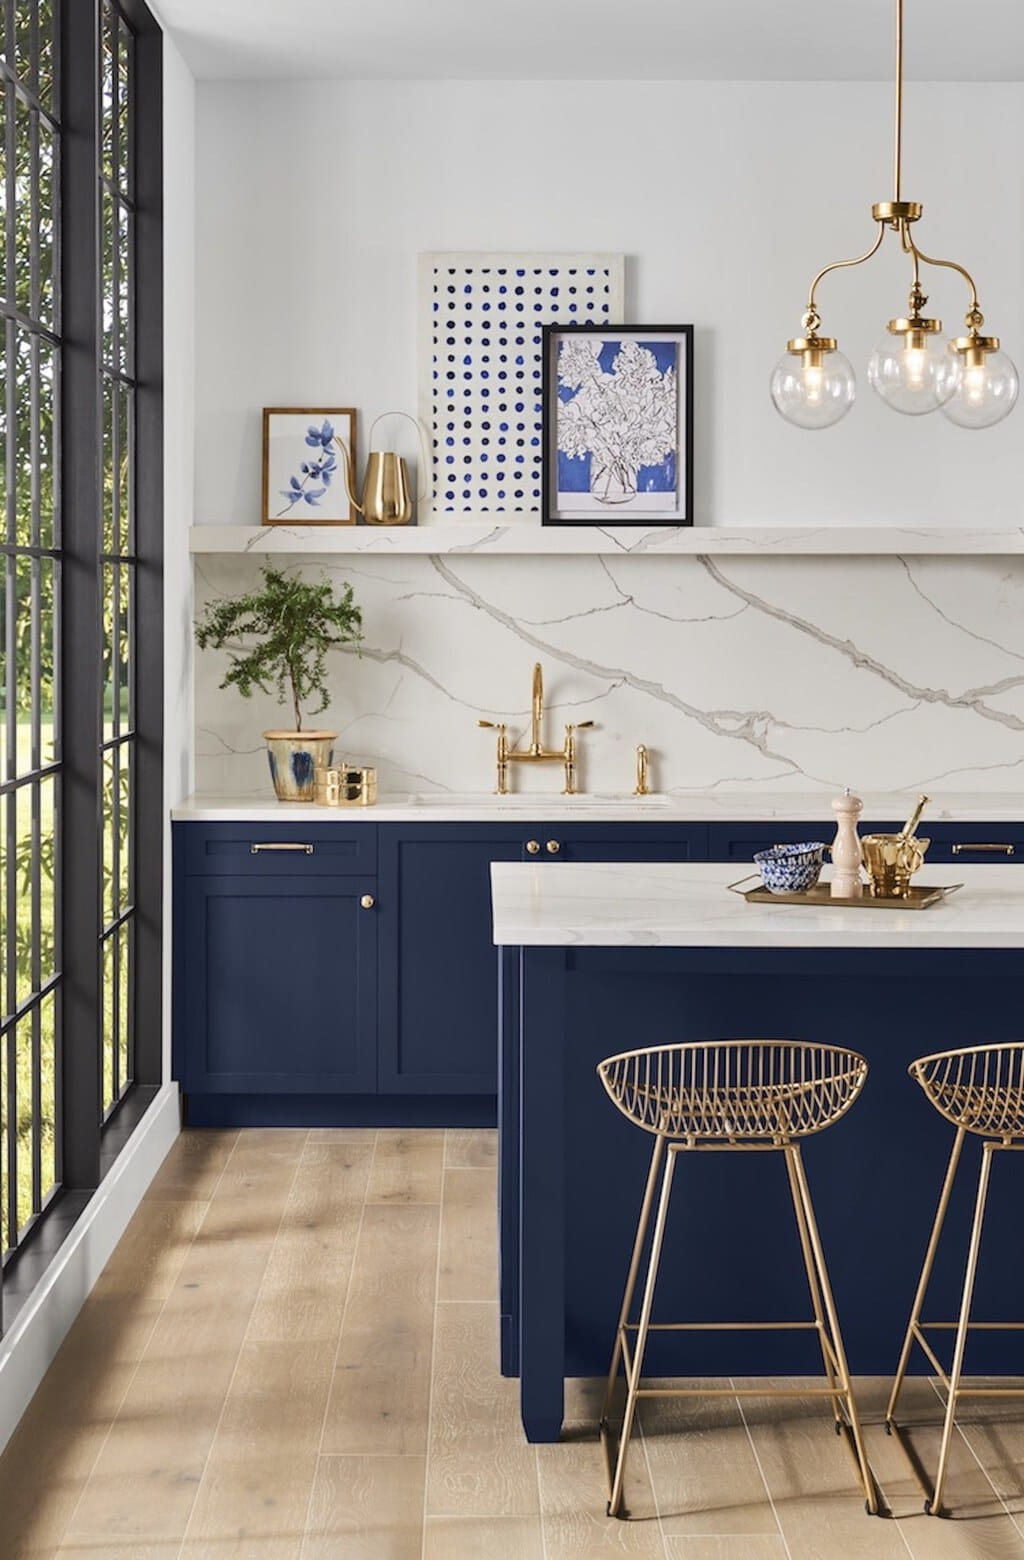 sherwin-williams naval painted kitchen cabinets with marble backsplash and gold accessories and bar stools